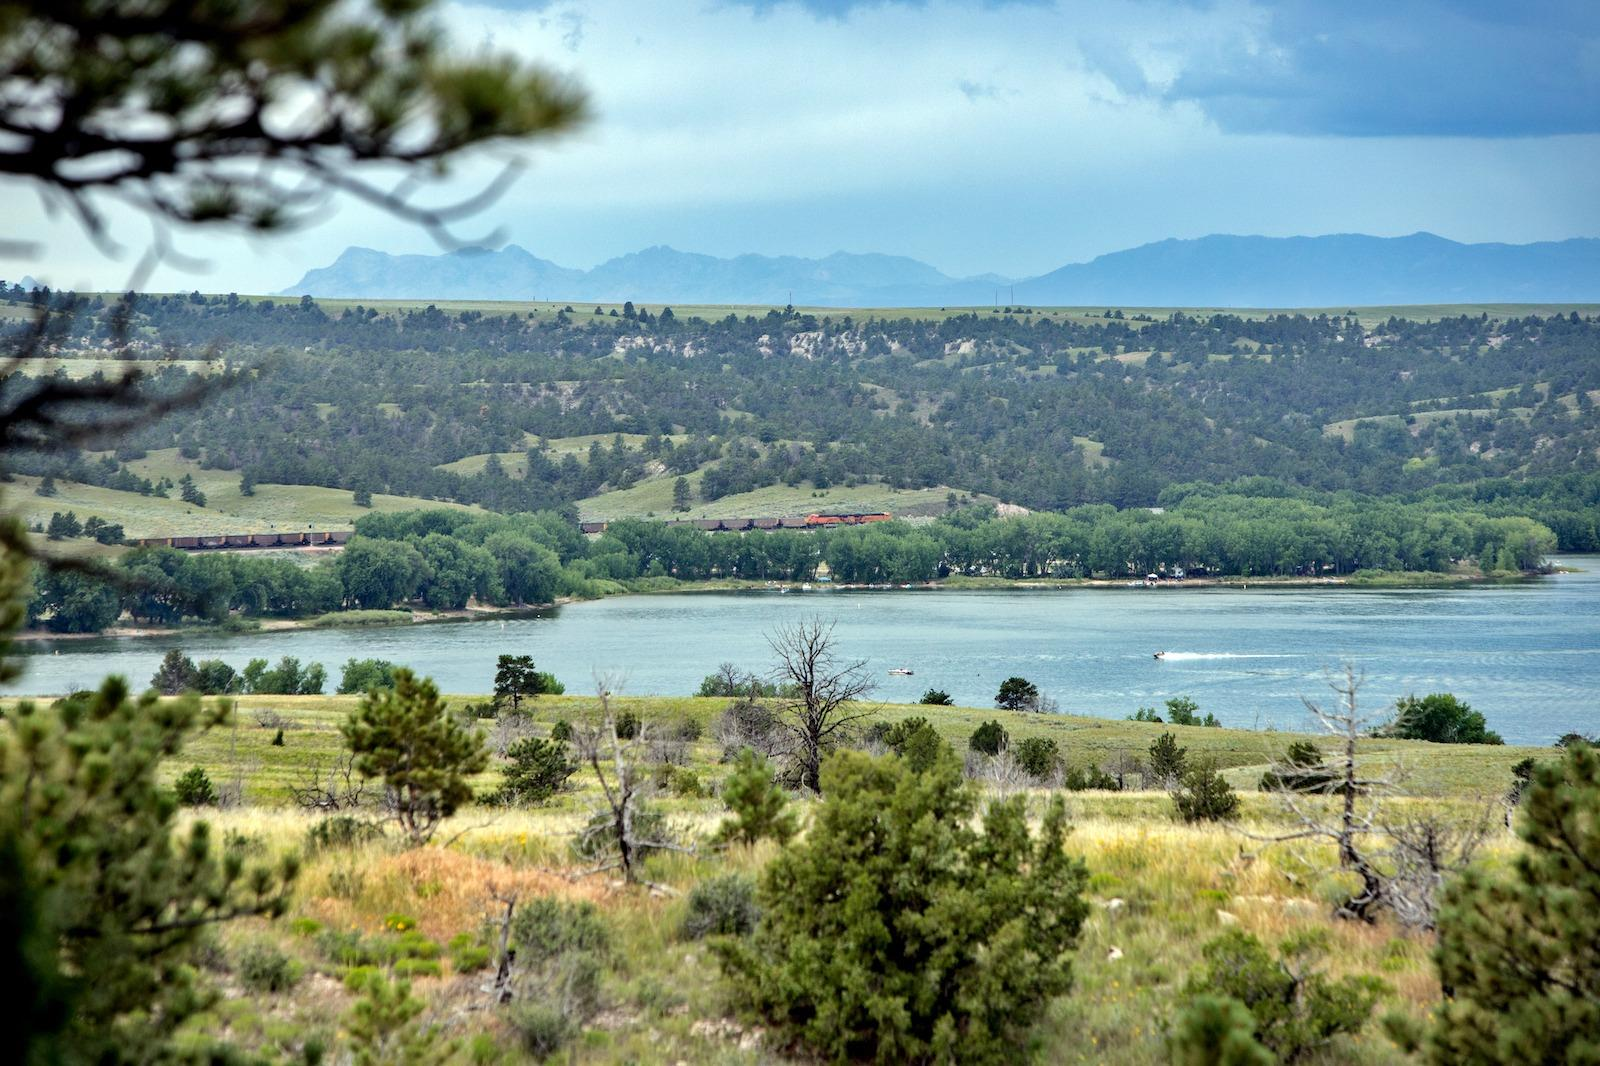 View over Guernsey State Park in Platte County, Wyoming, the perfect family vacation destination